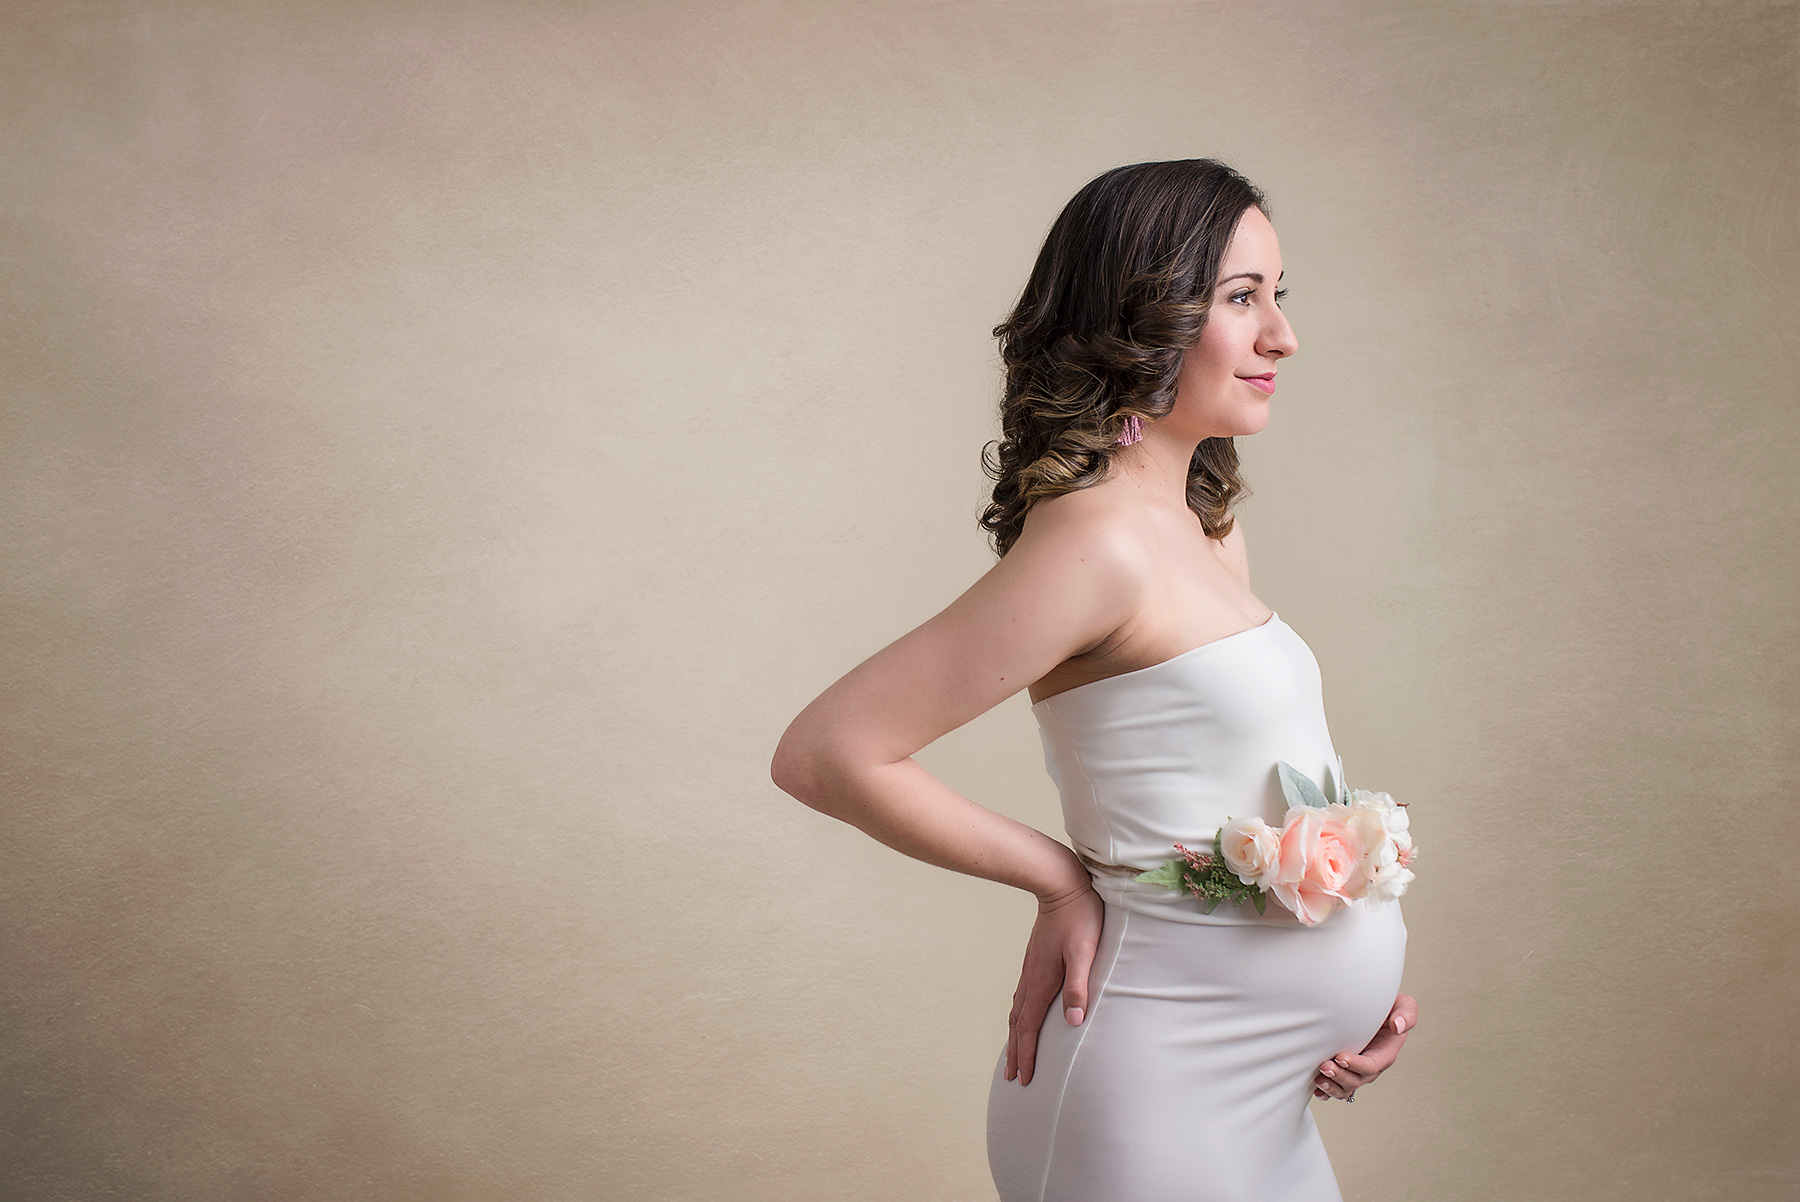 Dallas Luxury Maternity Photographer, Dallas Luxury Newborn Photographer CLJ Photography